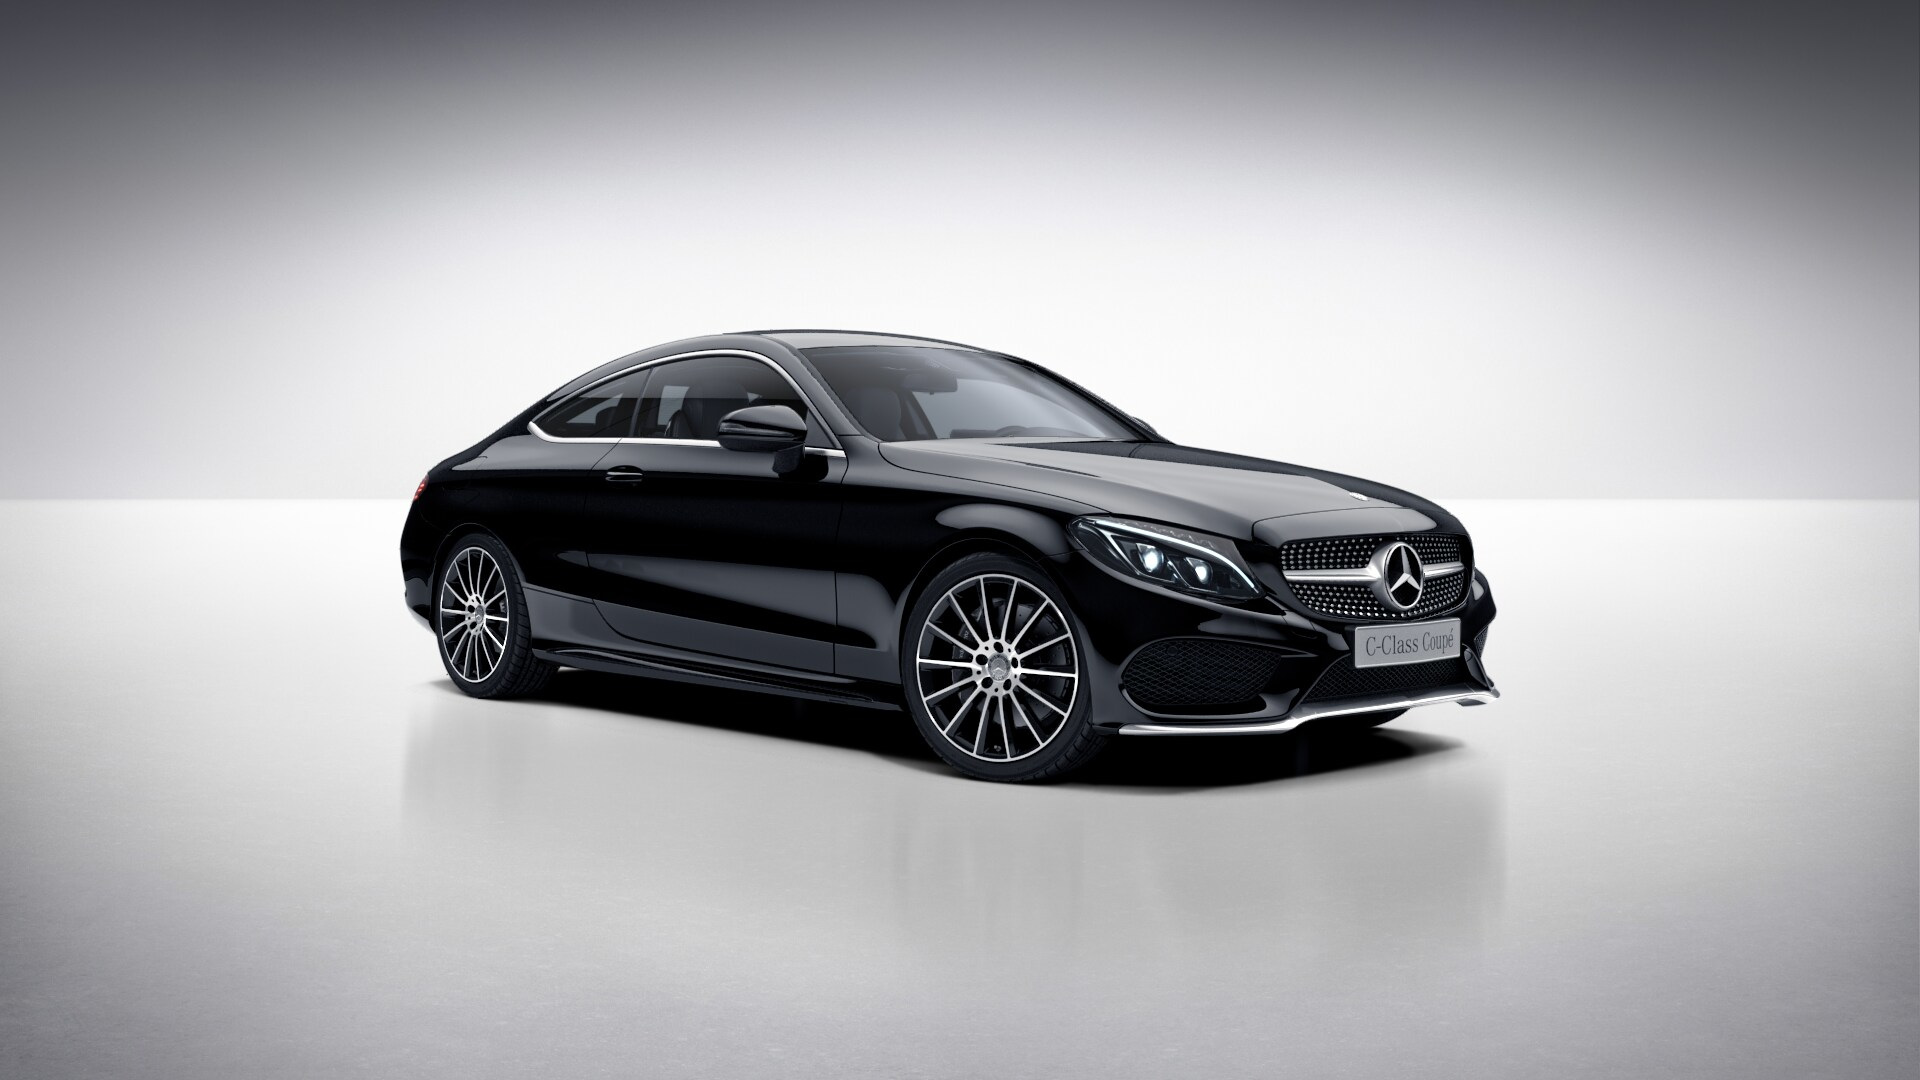 New 2017 mercedes benz c class c300 2 door coupe 1737650 mercedes benz of canada new and cpo